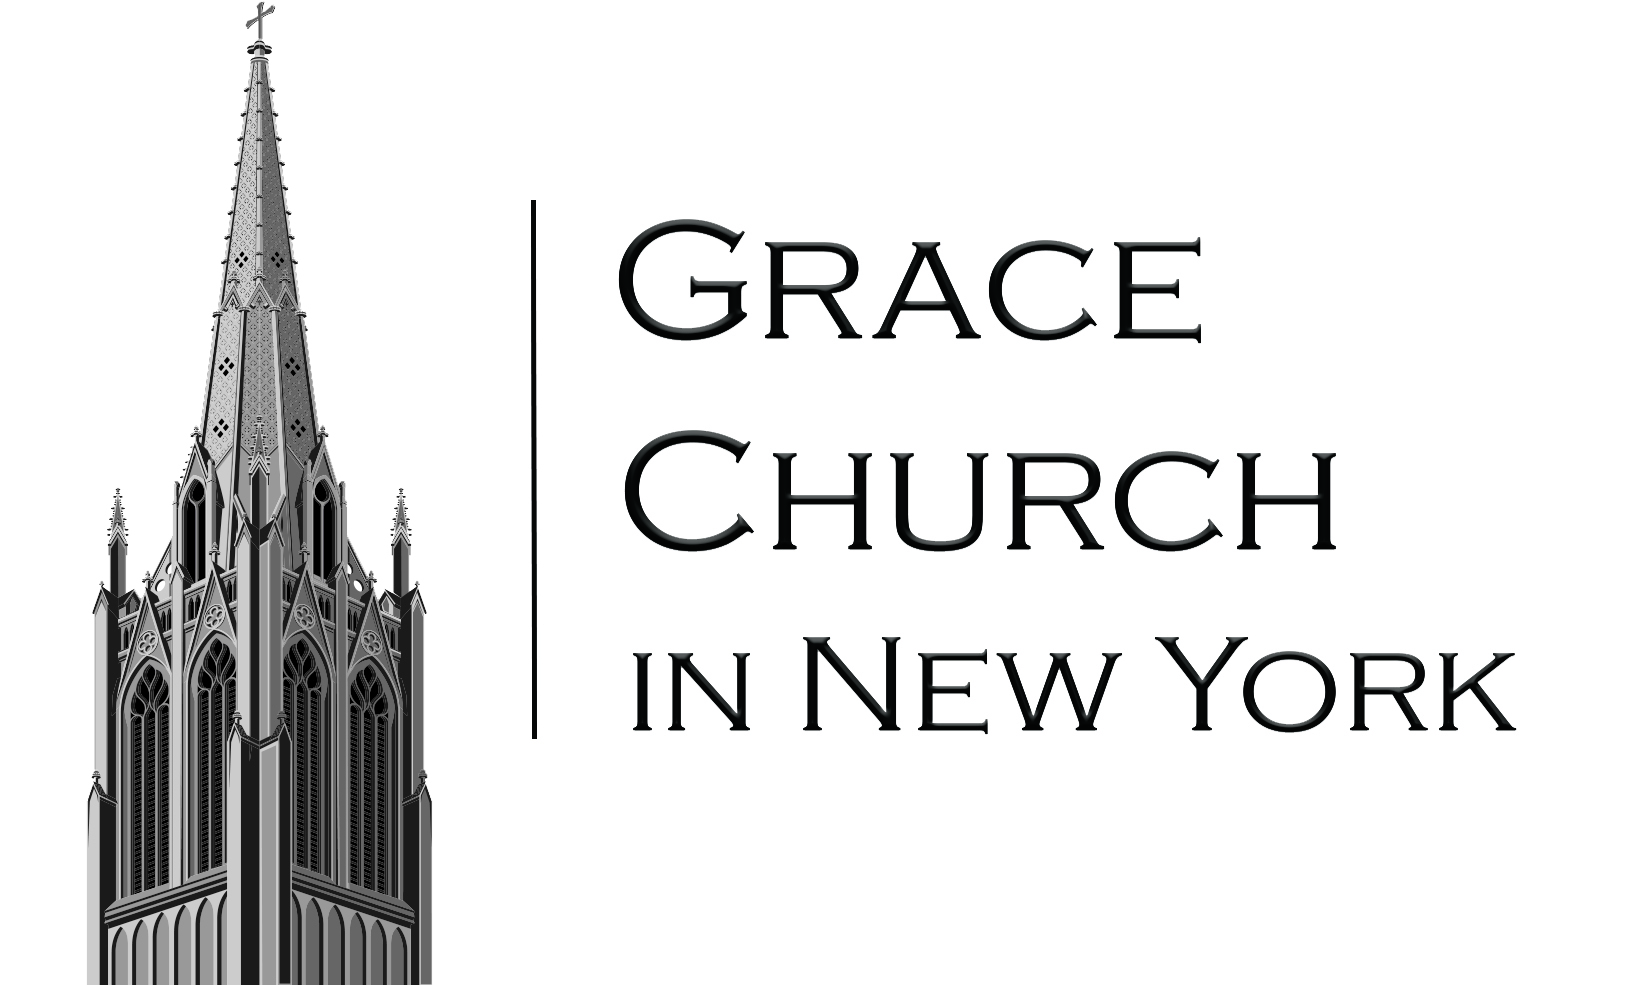 History | Grace Church in New York